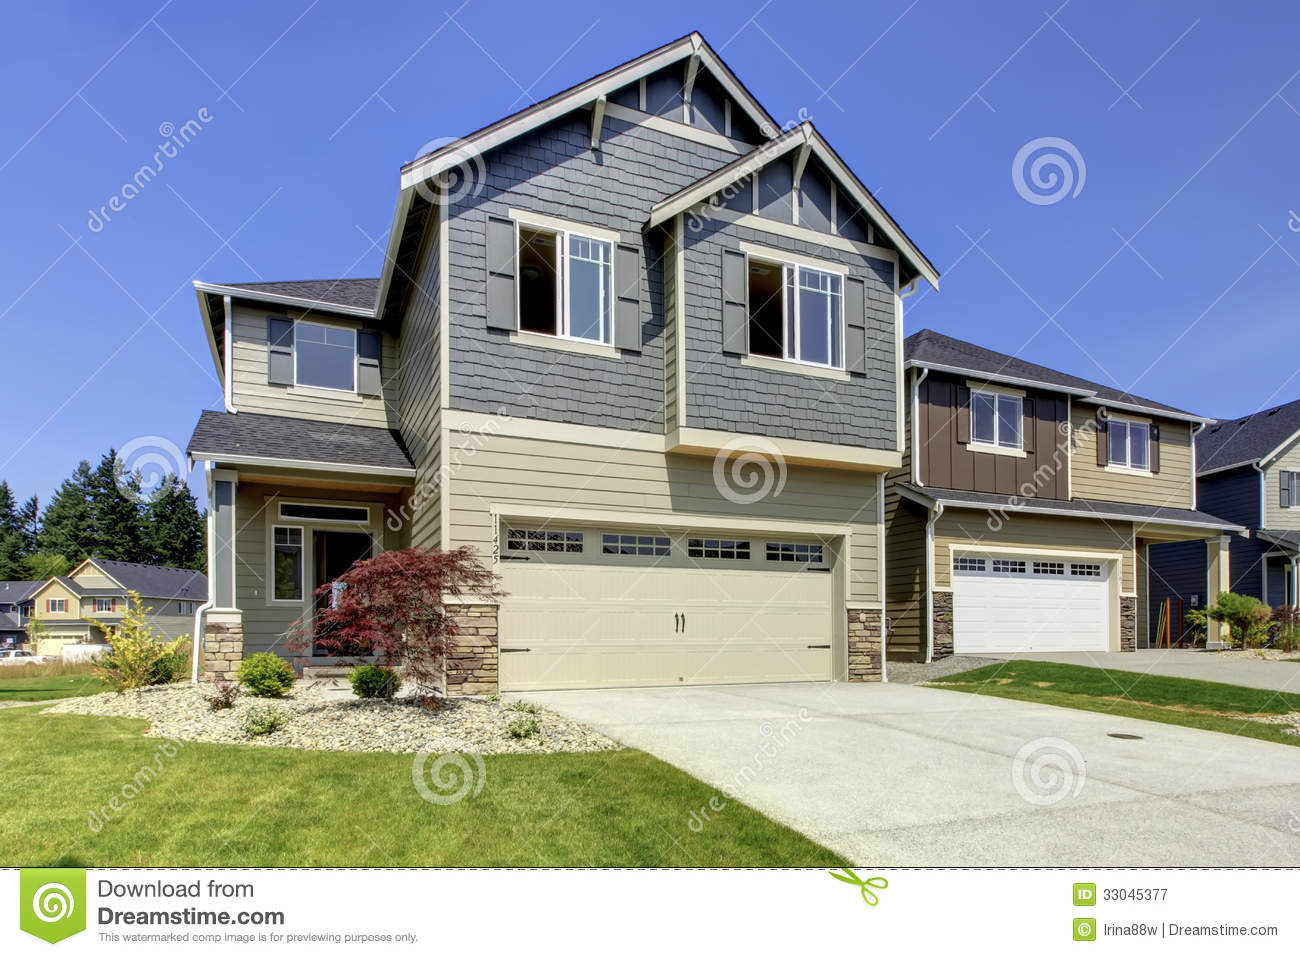 New american home exterior royalty free stock photography for New american homes